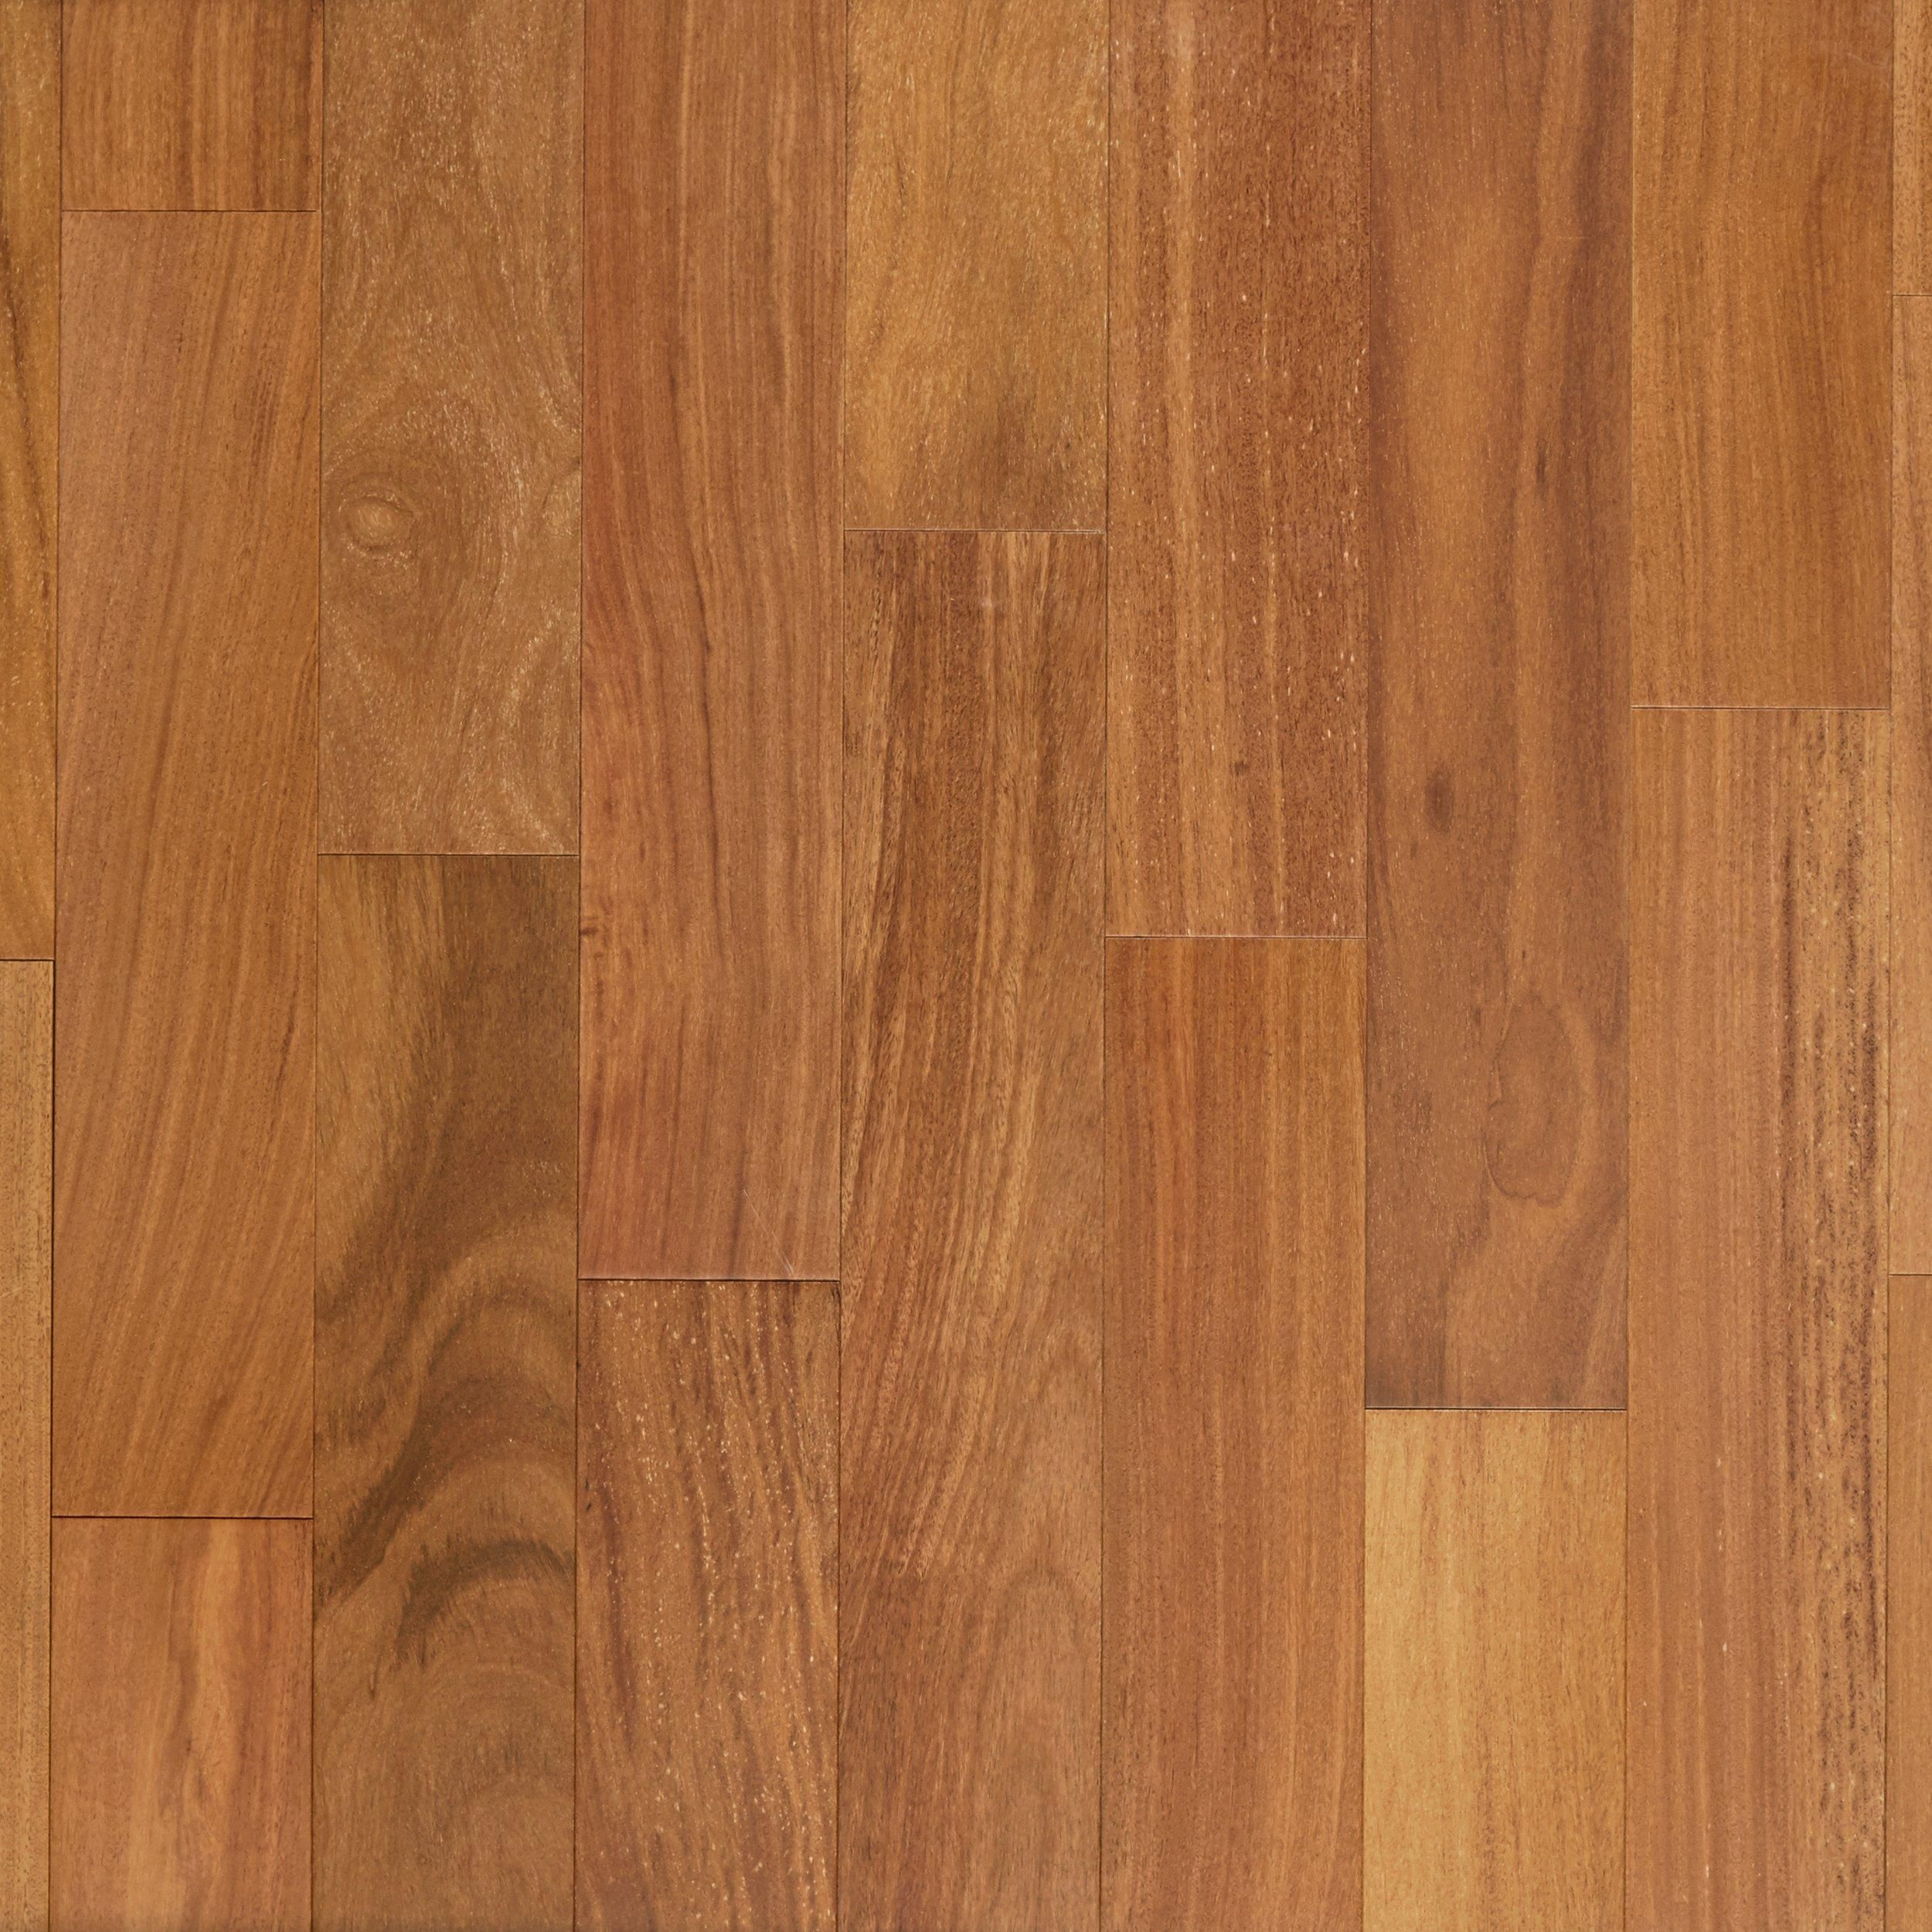 Cumaru Brazilian Teak Smooth Locking Engineered Hardwood In 2020 Engineered Hardwood Teak Flooring Wood Floors Wide Plank